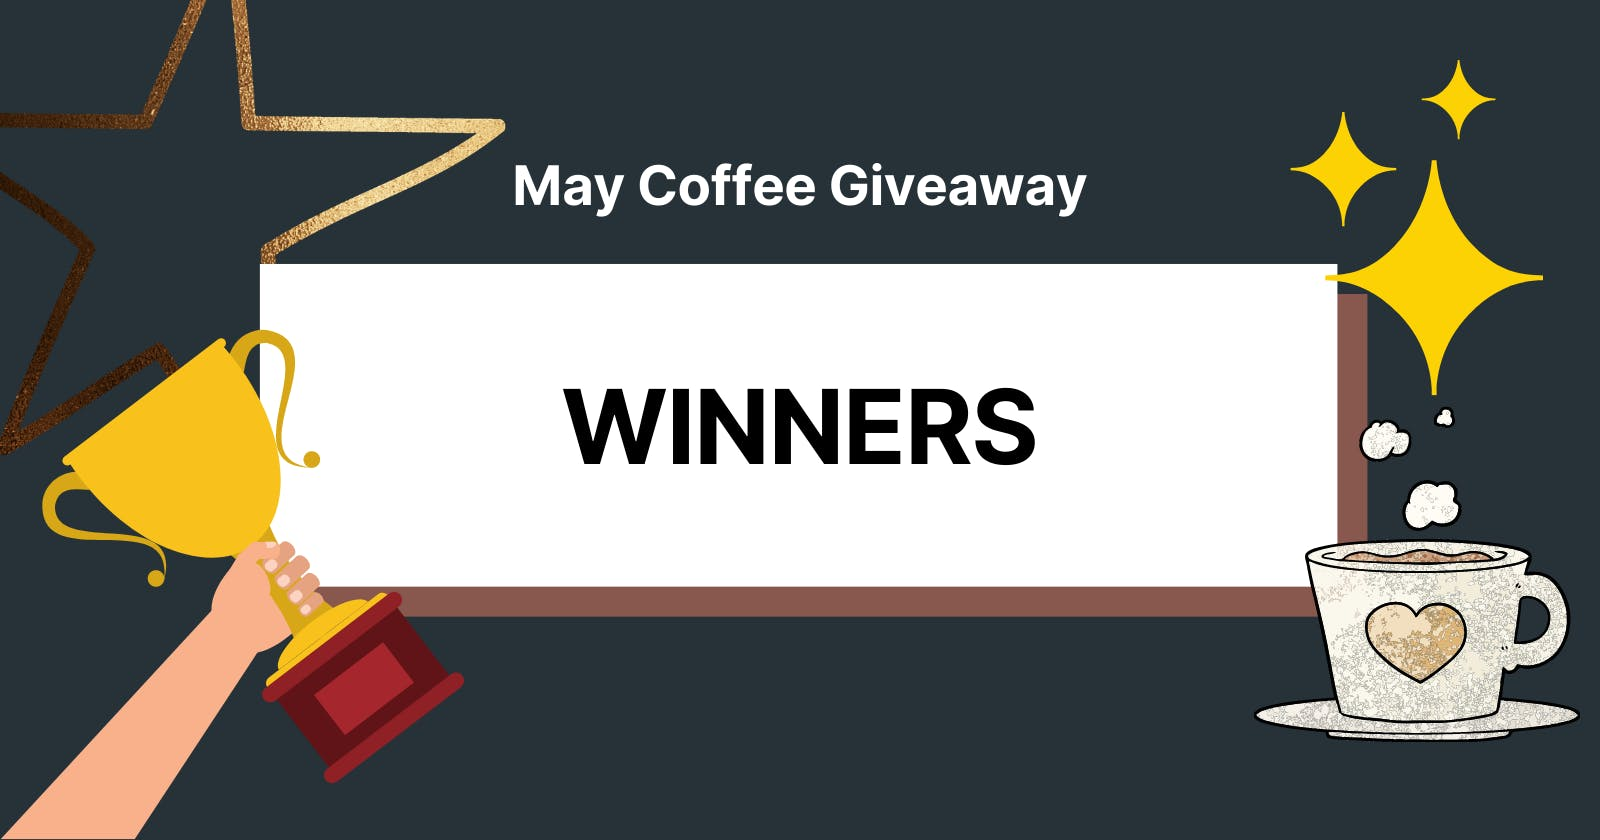 Winners of May Coffee Giveaway!